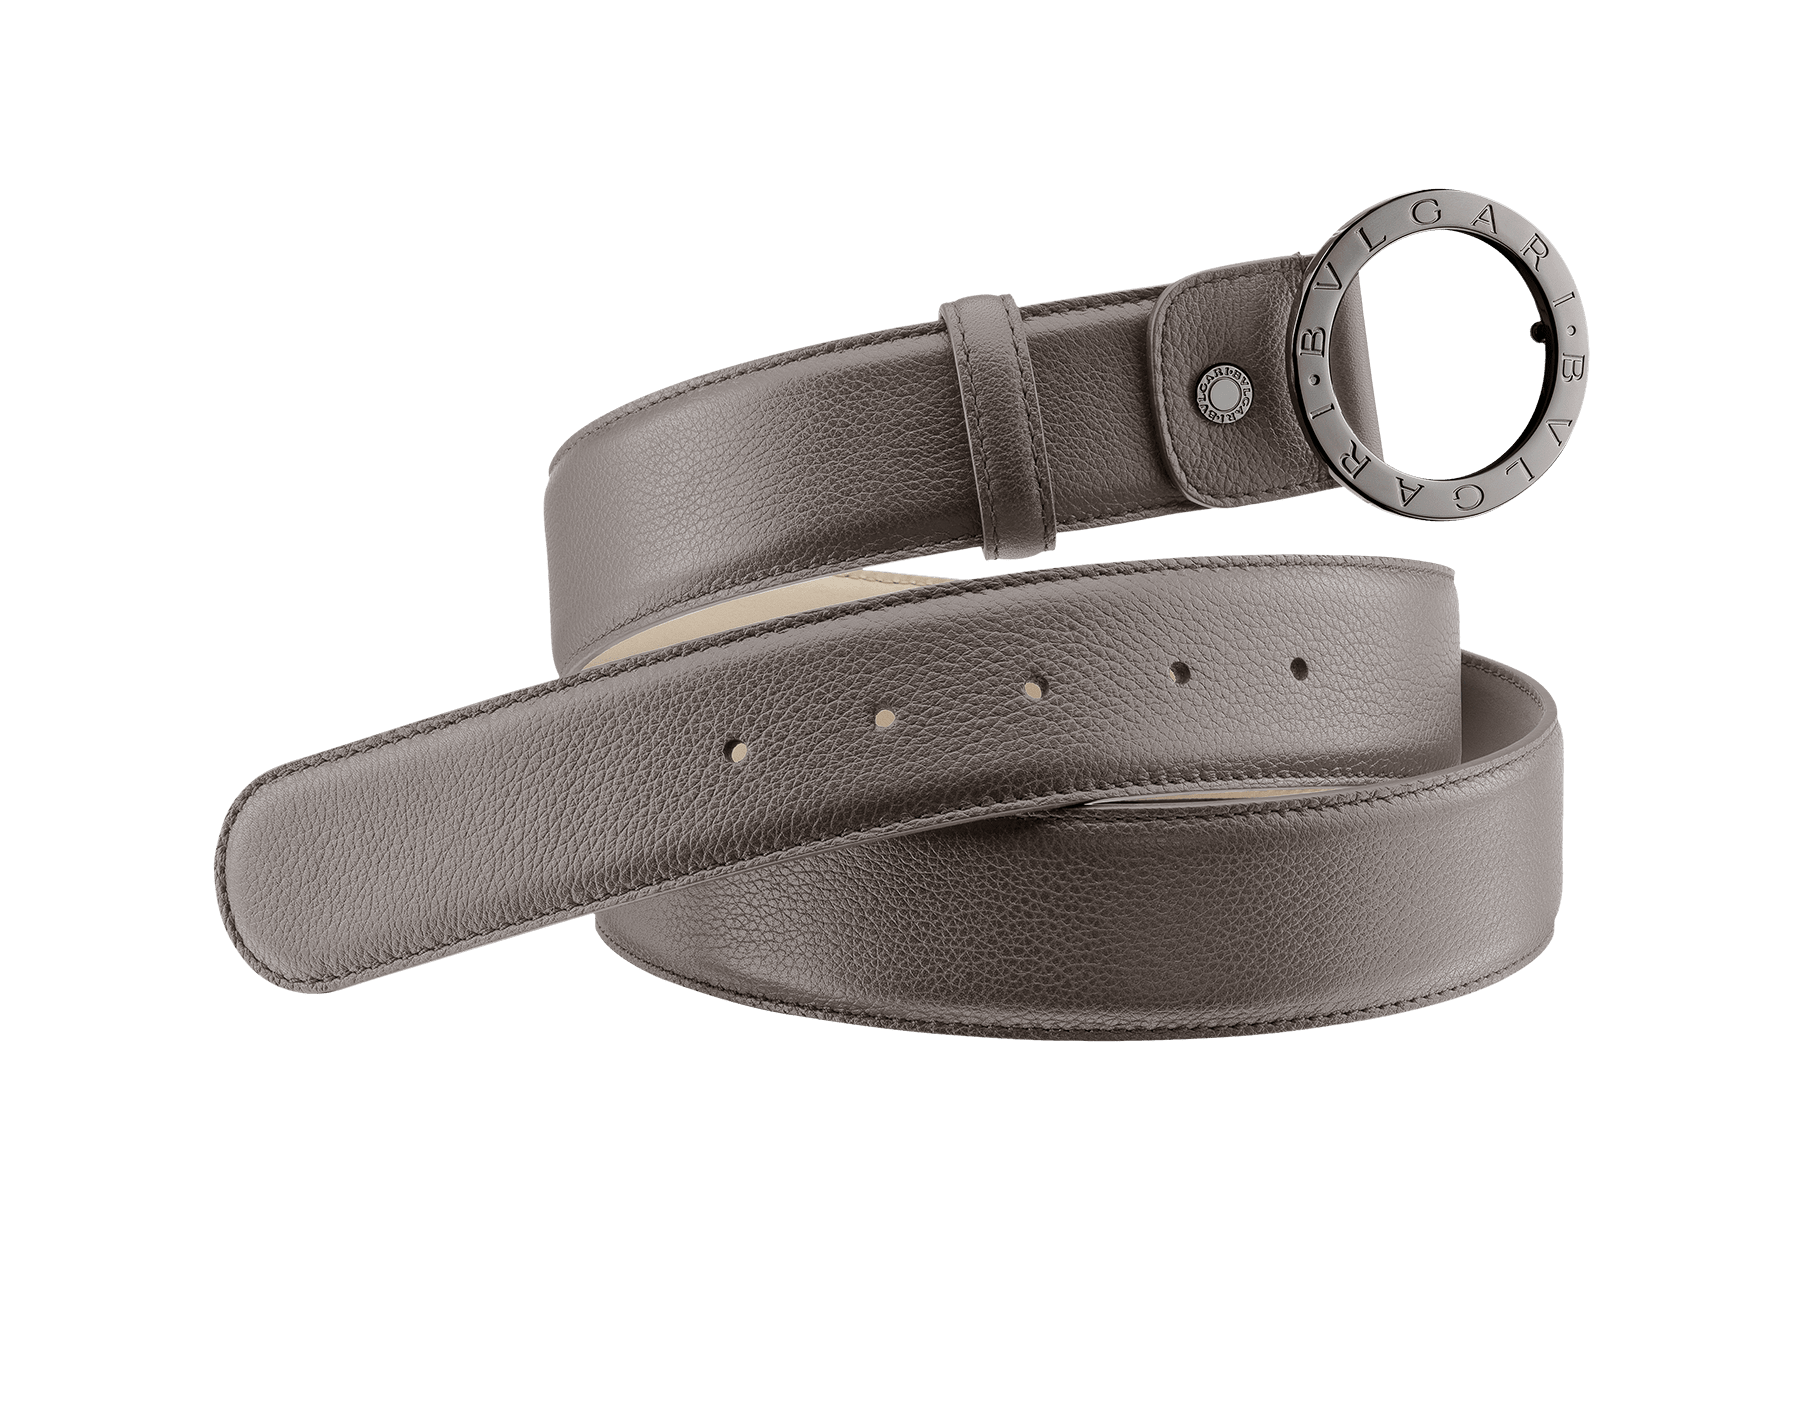 Man Belt in smoky quartz full grain calf leather with iconic round BVLGARI BVLGARI closure in dark ruthenium plated hardware. Also available in other colours and materials in-store. Resizable/Adjustable ROUND-CURVED-fgcl image 1